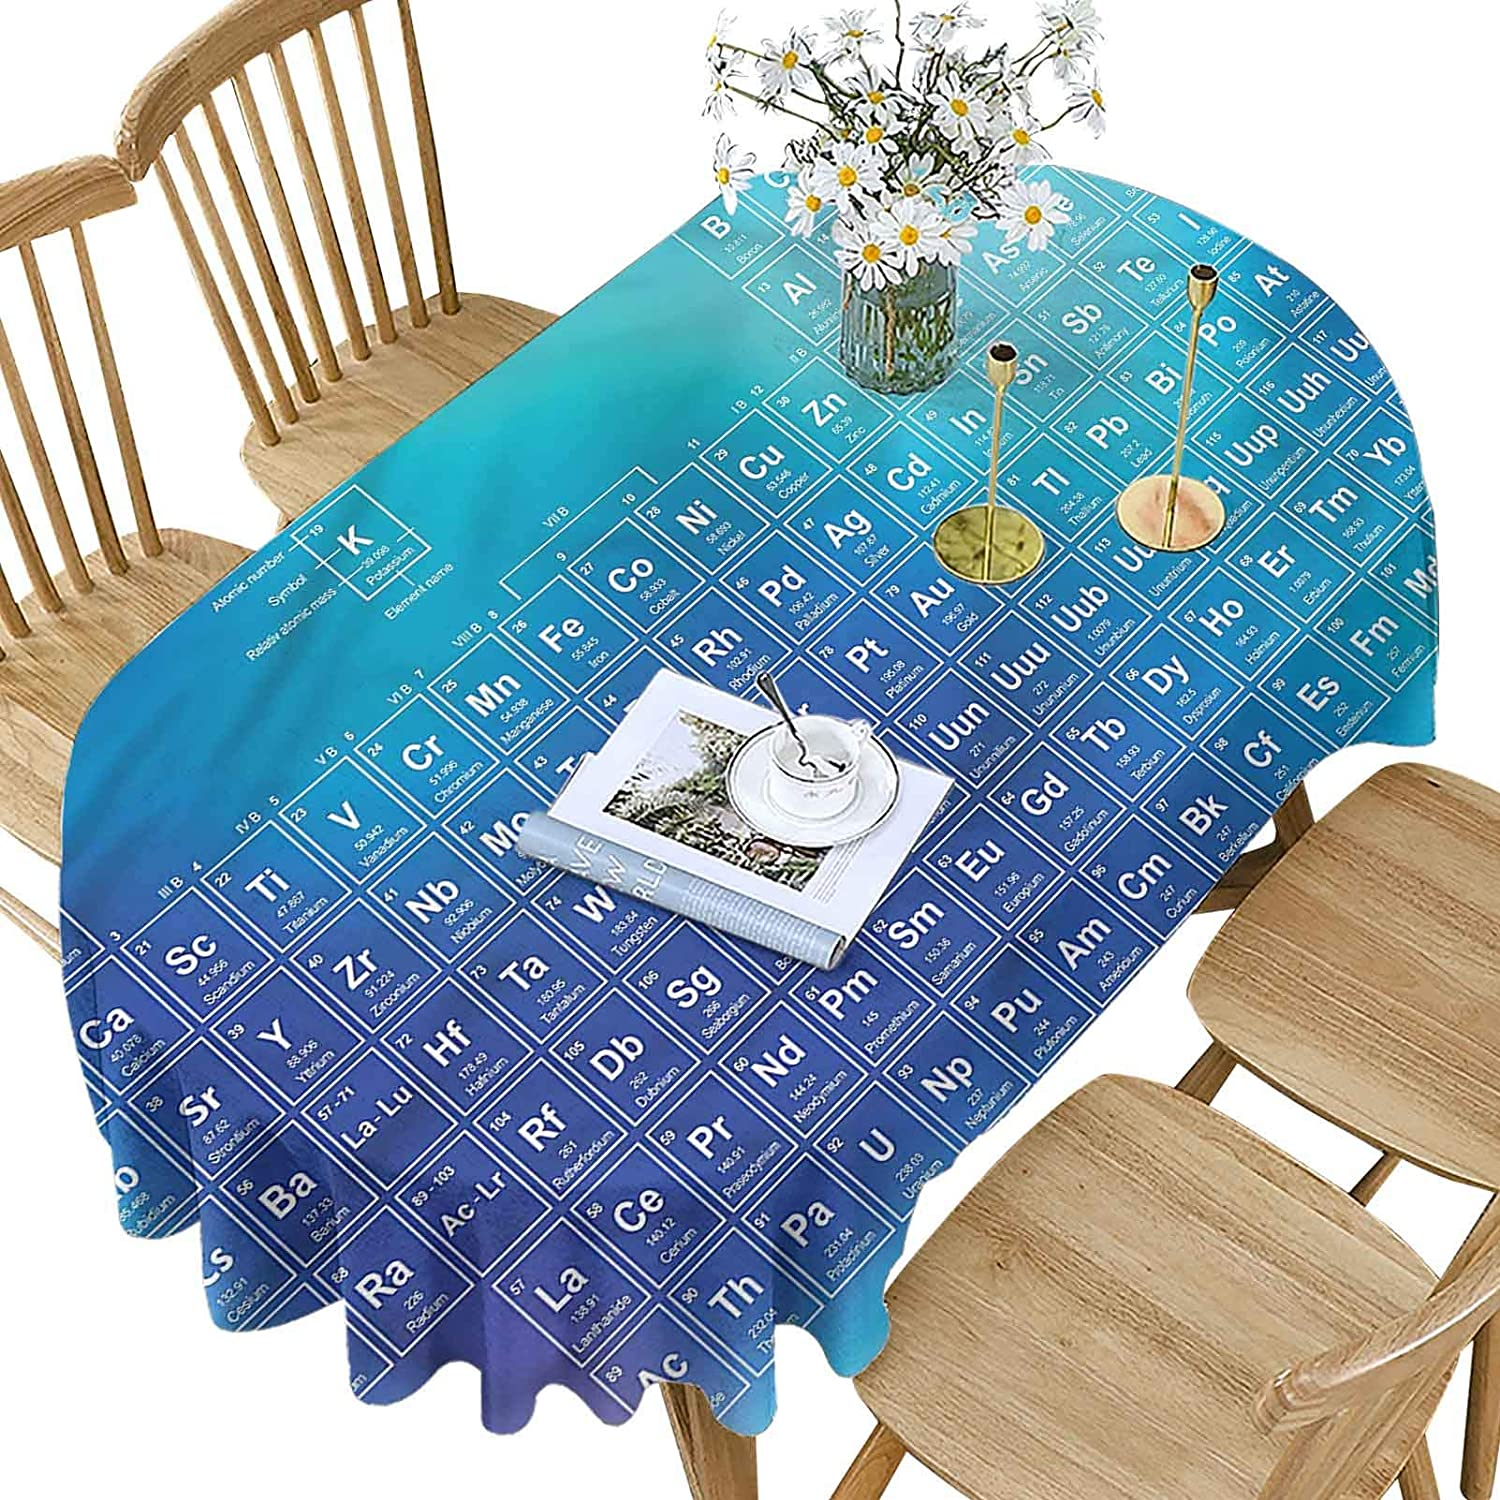 Hiiiman 25% OFF Science Polyester Oval Element Chemistry Max 56% OFF Tabl Tablecloth